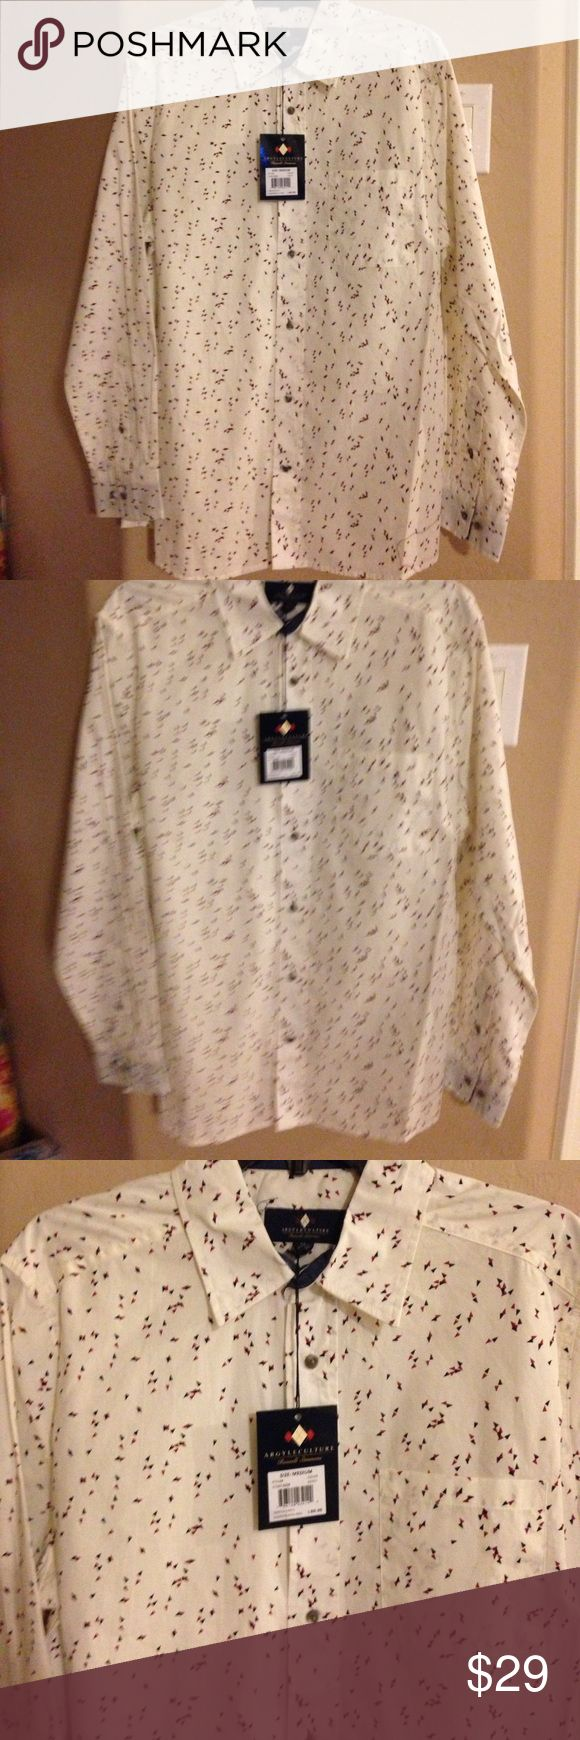 Argyle Culture-Russell Simmons Shirt – size Medium NEW - Argyle Culture-Russell Simmons Shirt – size Medium. This is a beautiful shirt it is 100% cotton and machine washable. Argyle Culture-Russell Simmons Shirts Casual Button Down Shirts